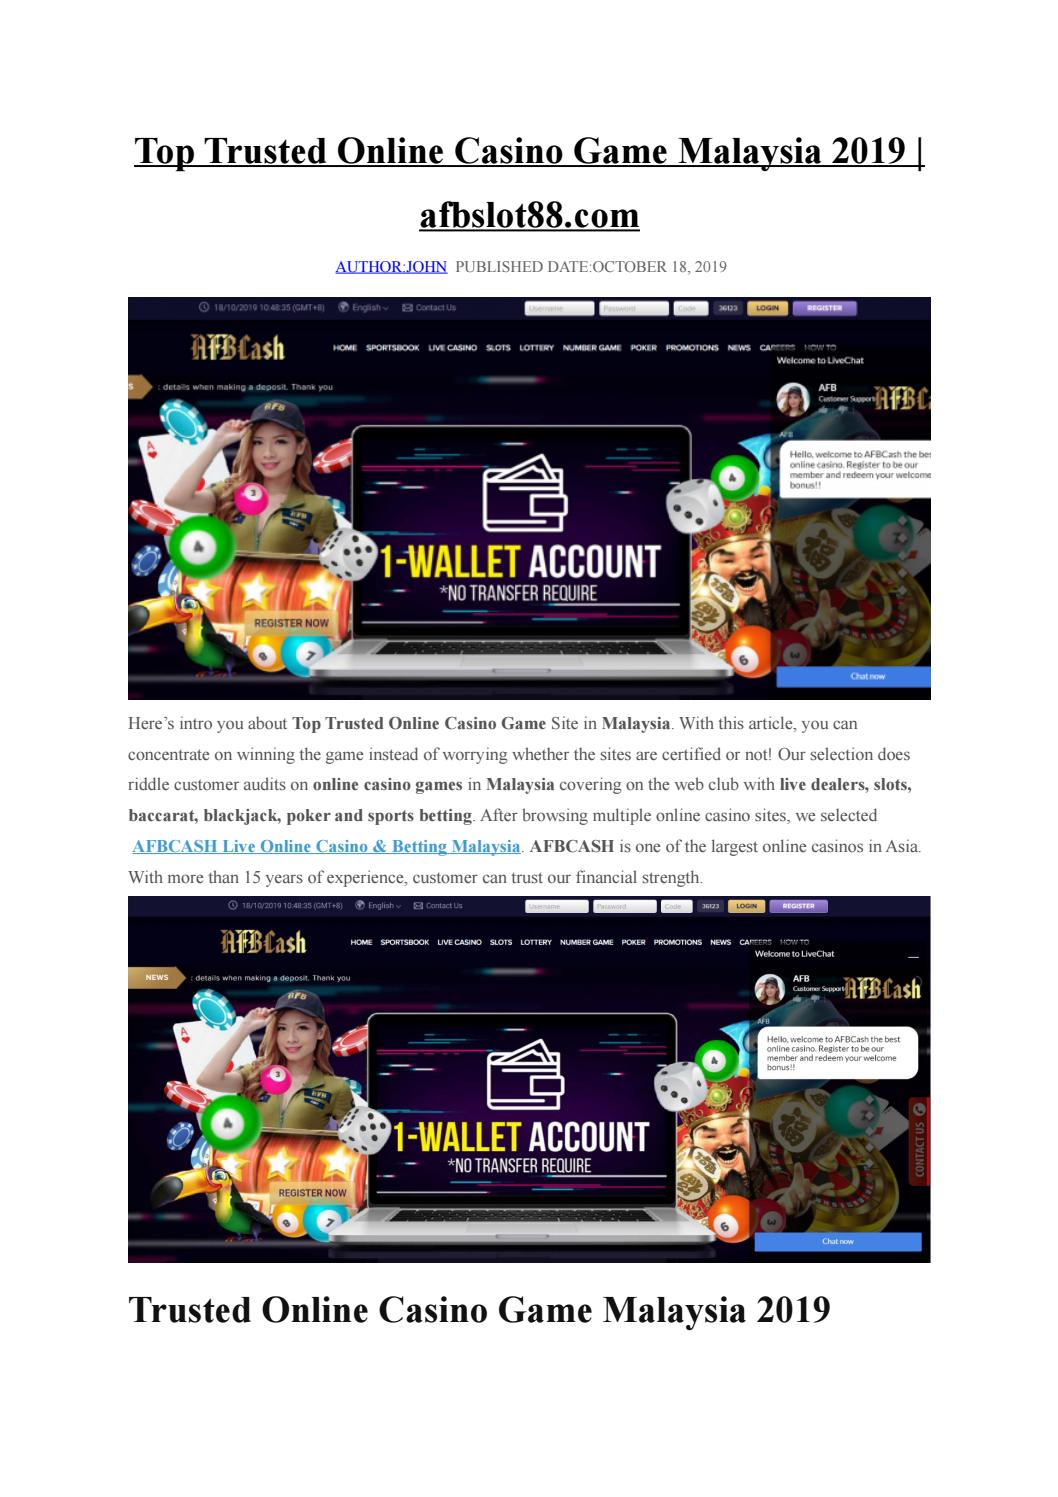 Top Online Casino Game Trusted In Malaysia 2019 Afbslot88 Com By